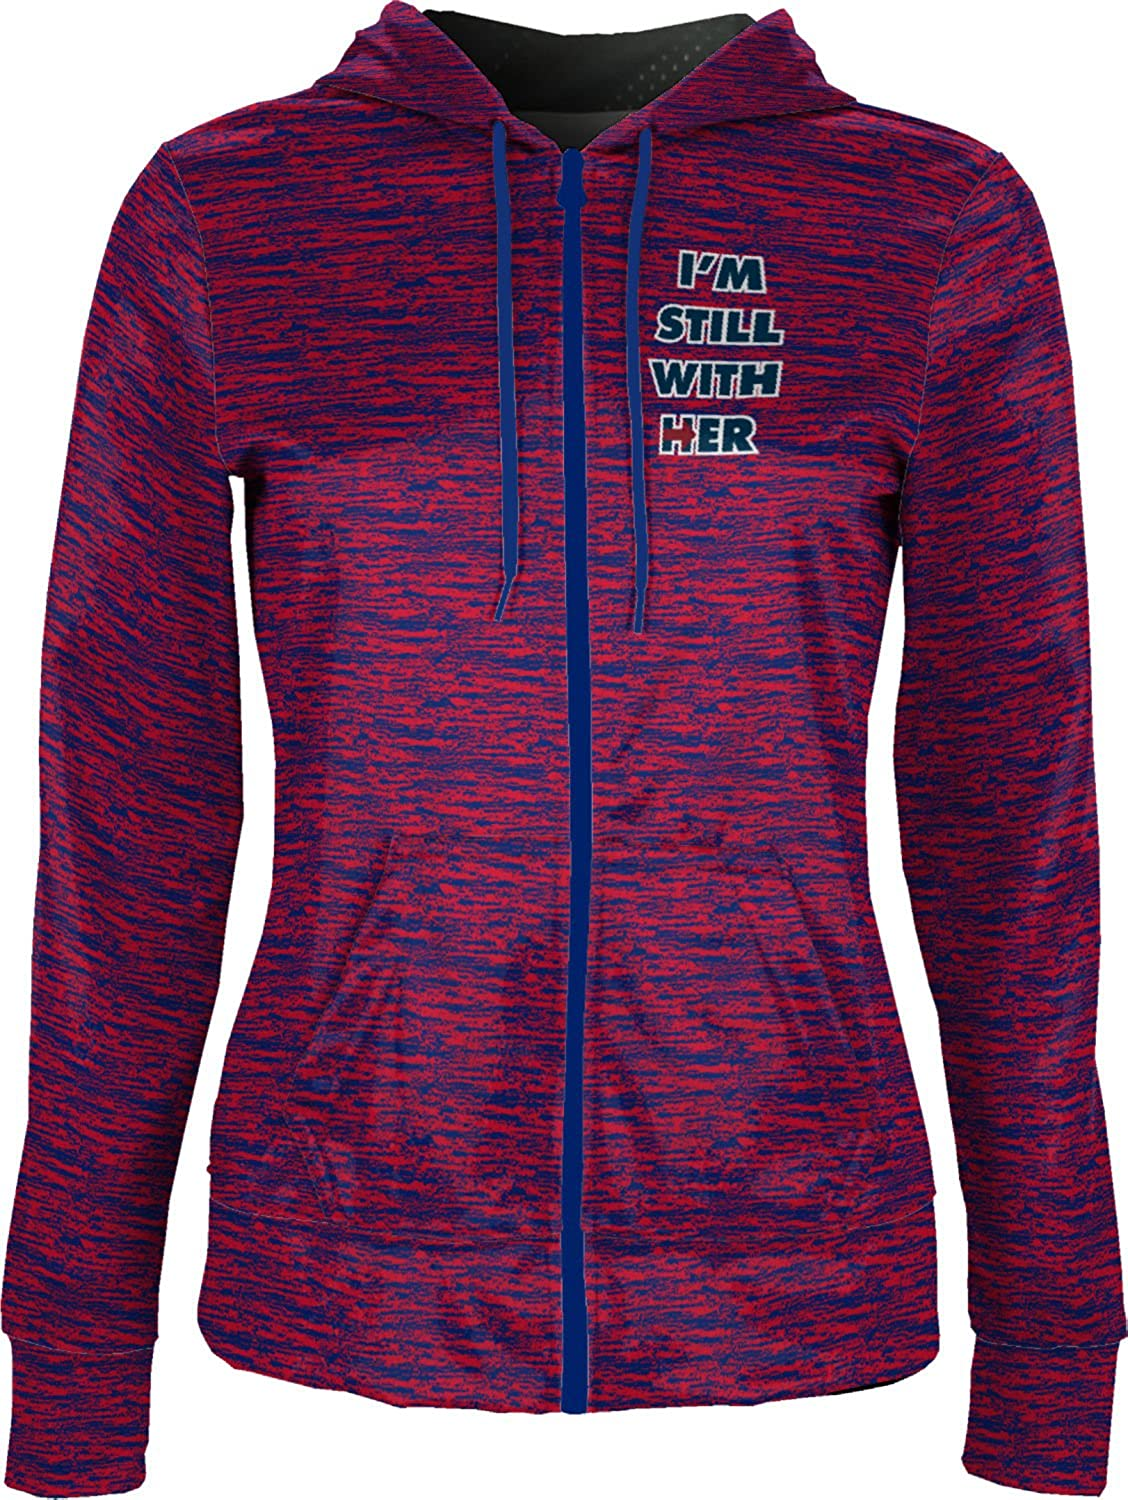 ProSphere Women's Still With Her Trending Brushed Fullzip Hoodie